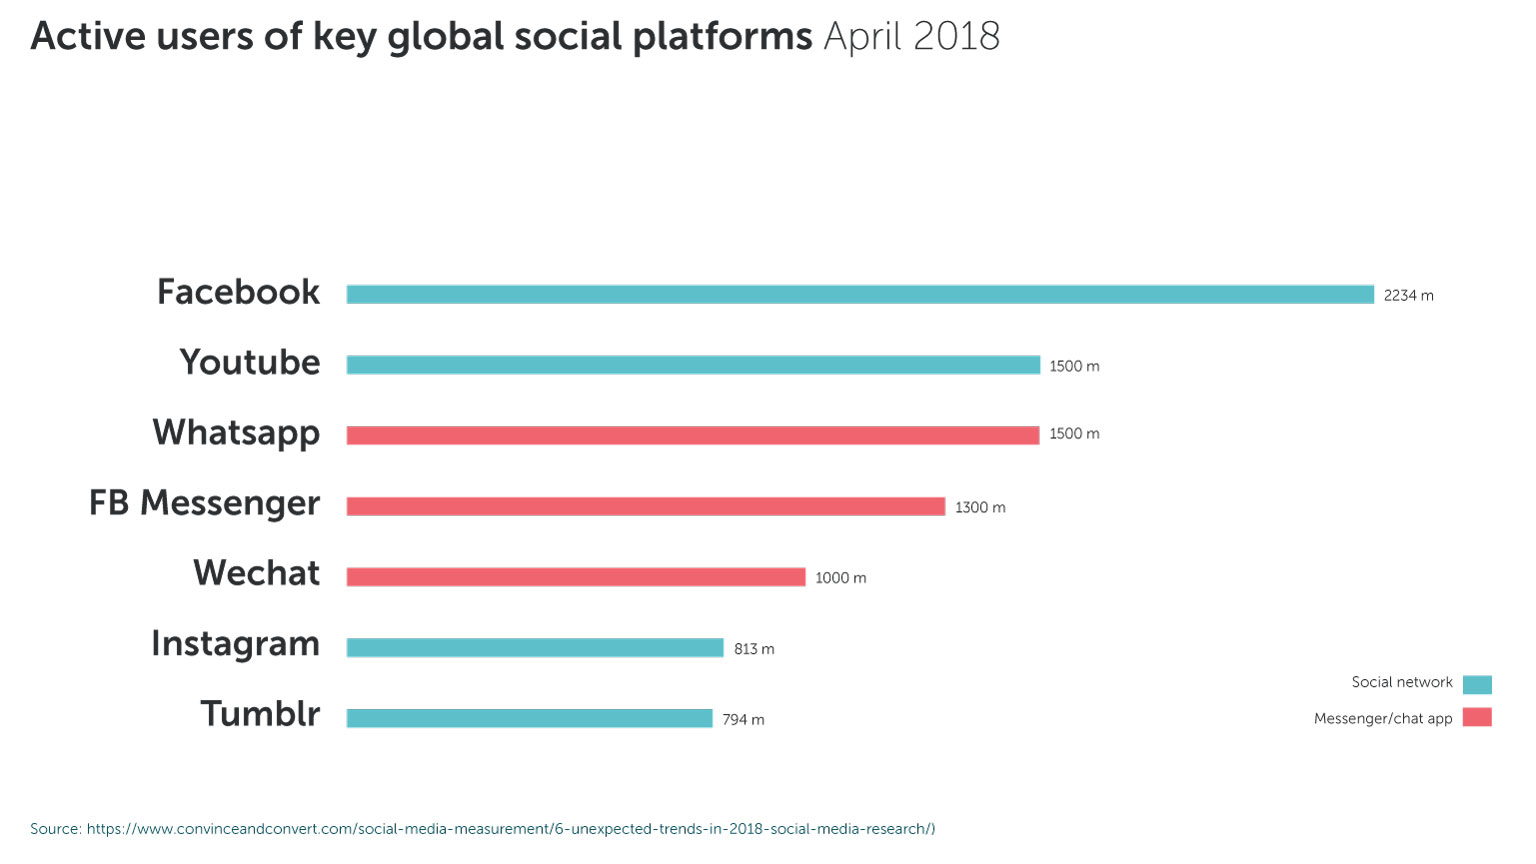 Active users key global social platforms